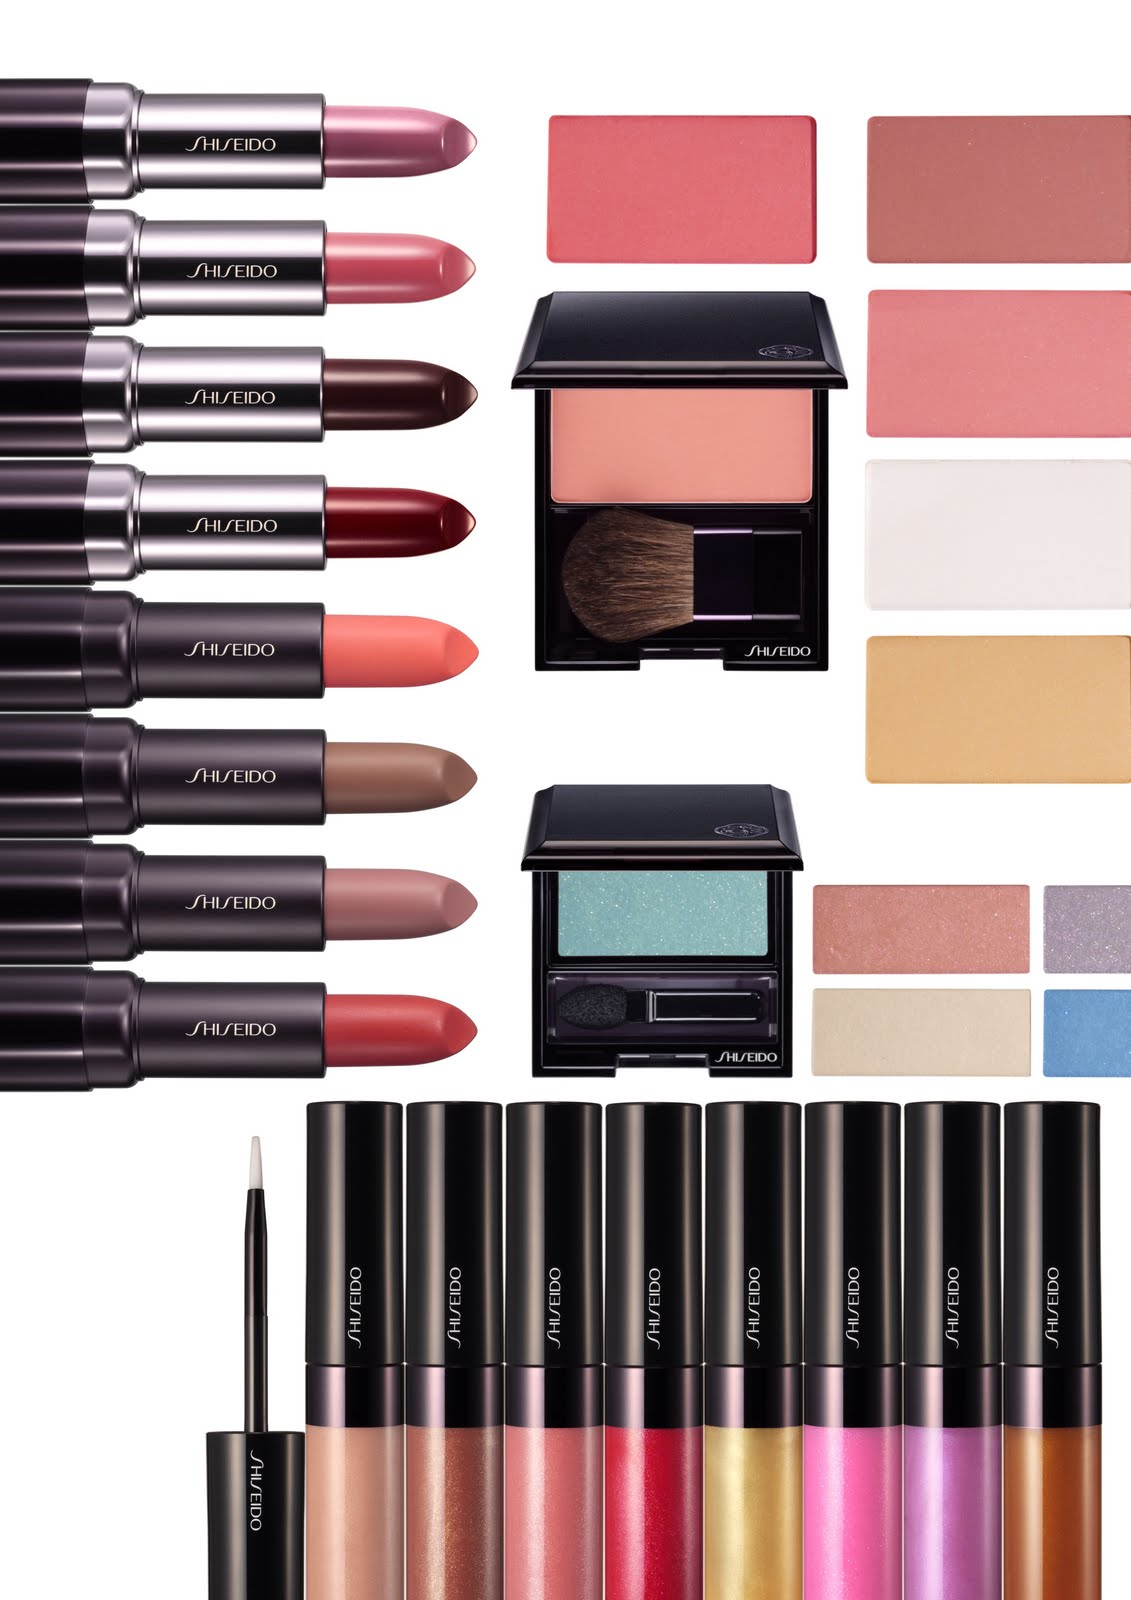 Best Things in Beauty: Shiseido Spring Collection - Part 1